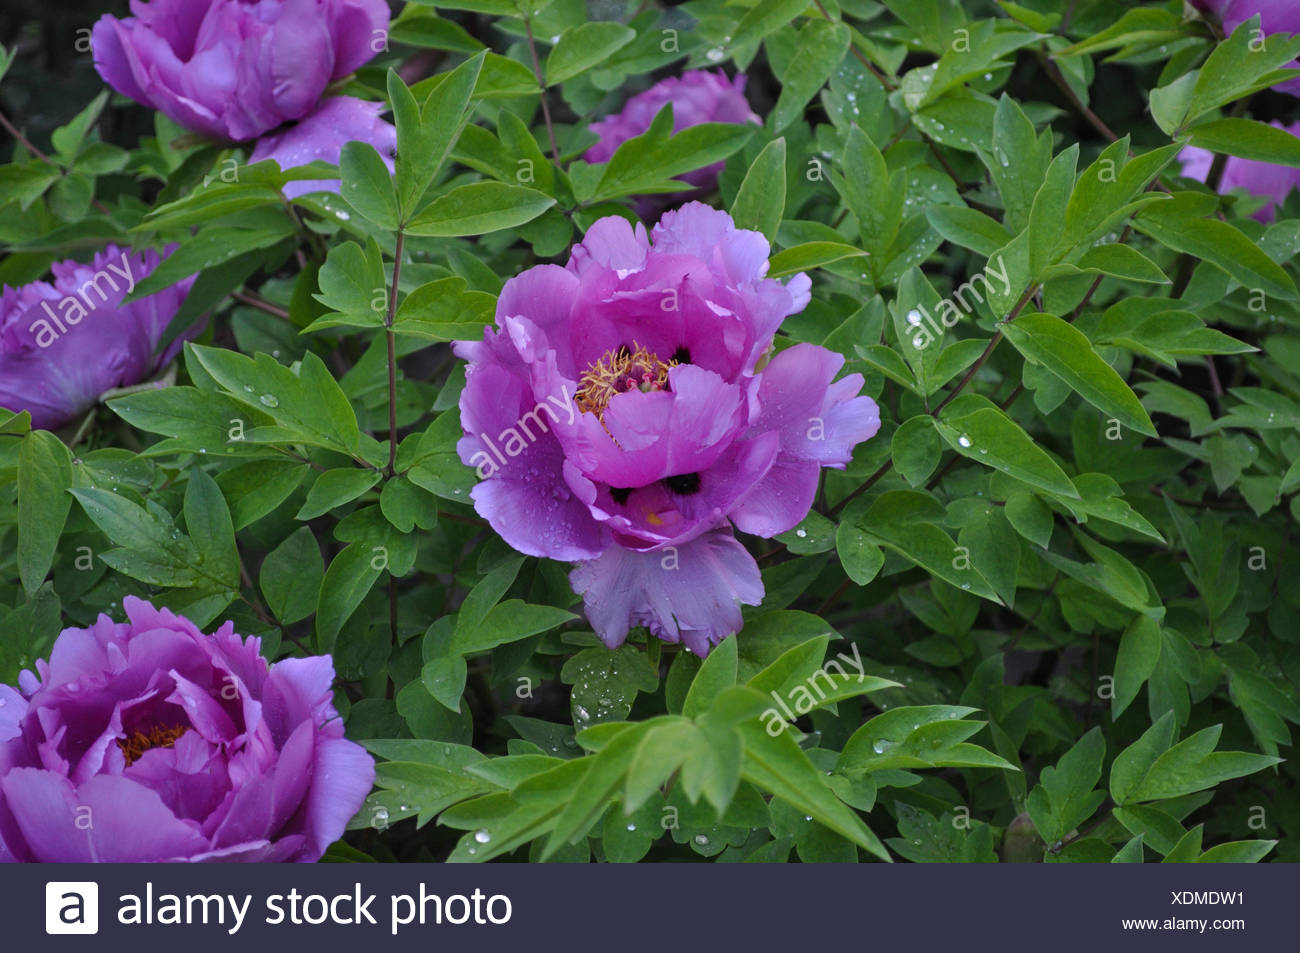 Beautiful Background With Flowers Peonies Stock Photo 283806349 Alamy